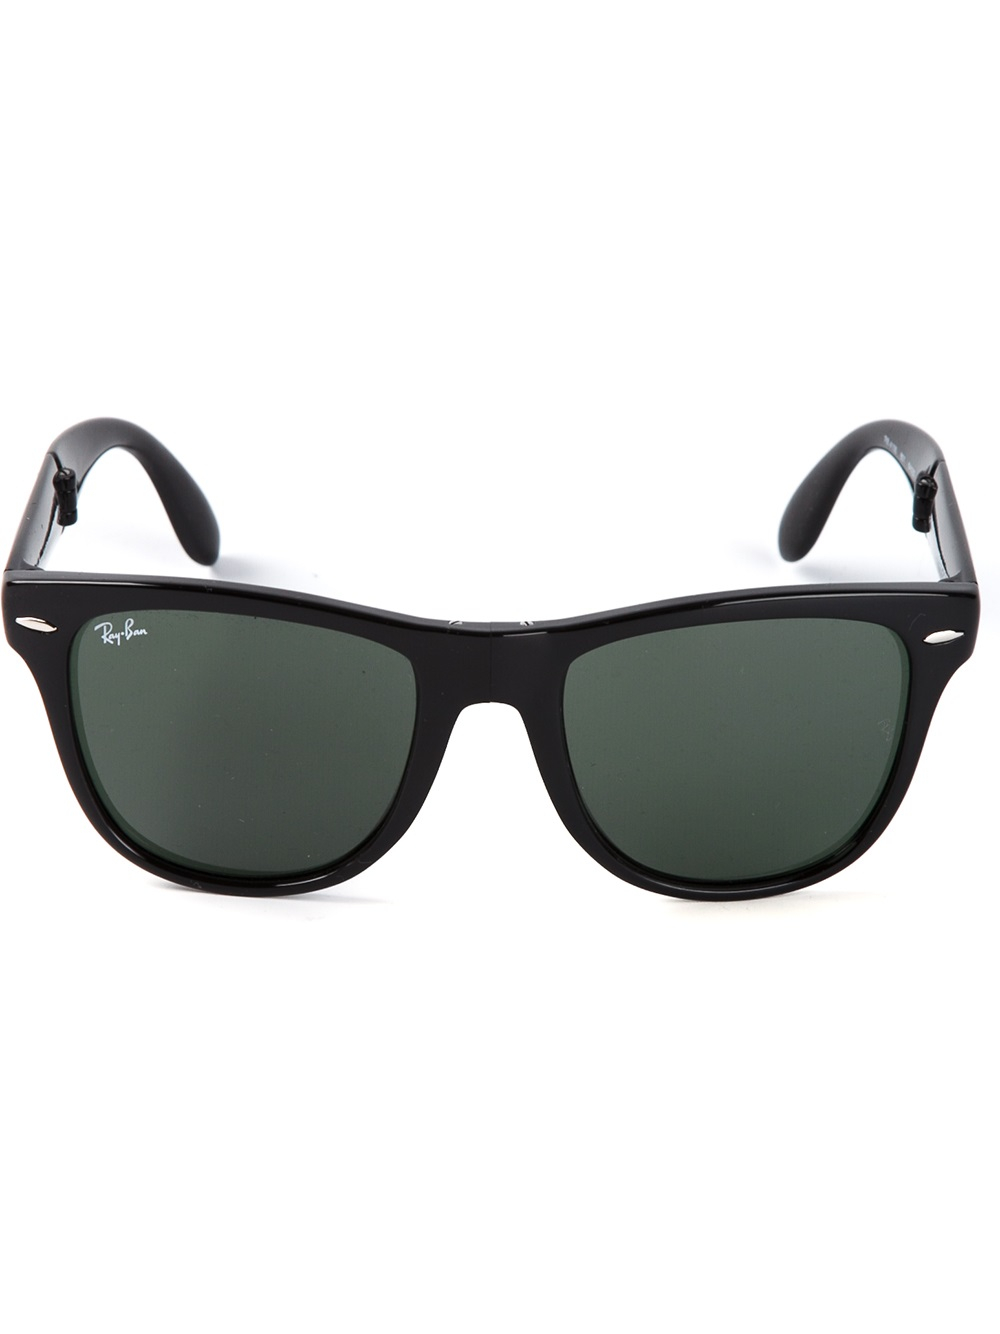 ray ban square sunglasses  Ray-ban Square Frame Sunglasses in Black for Men